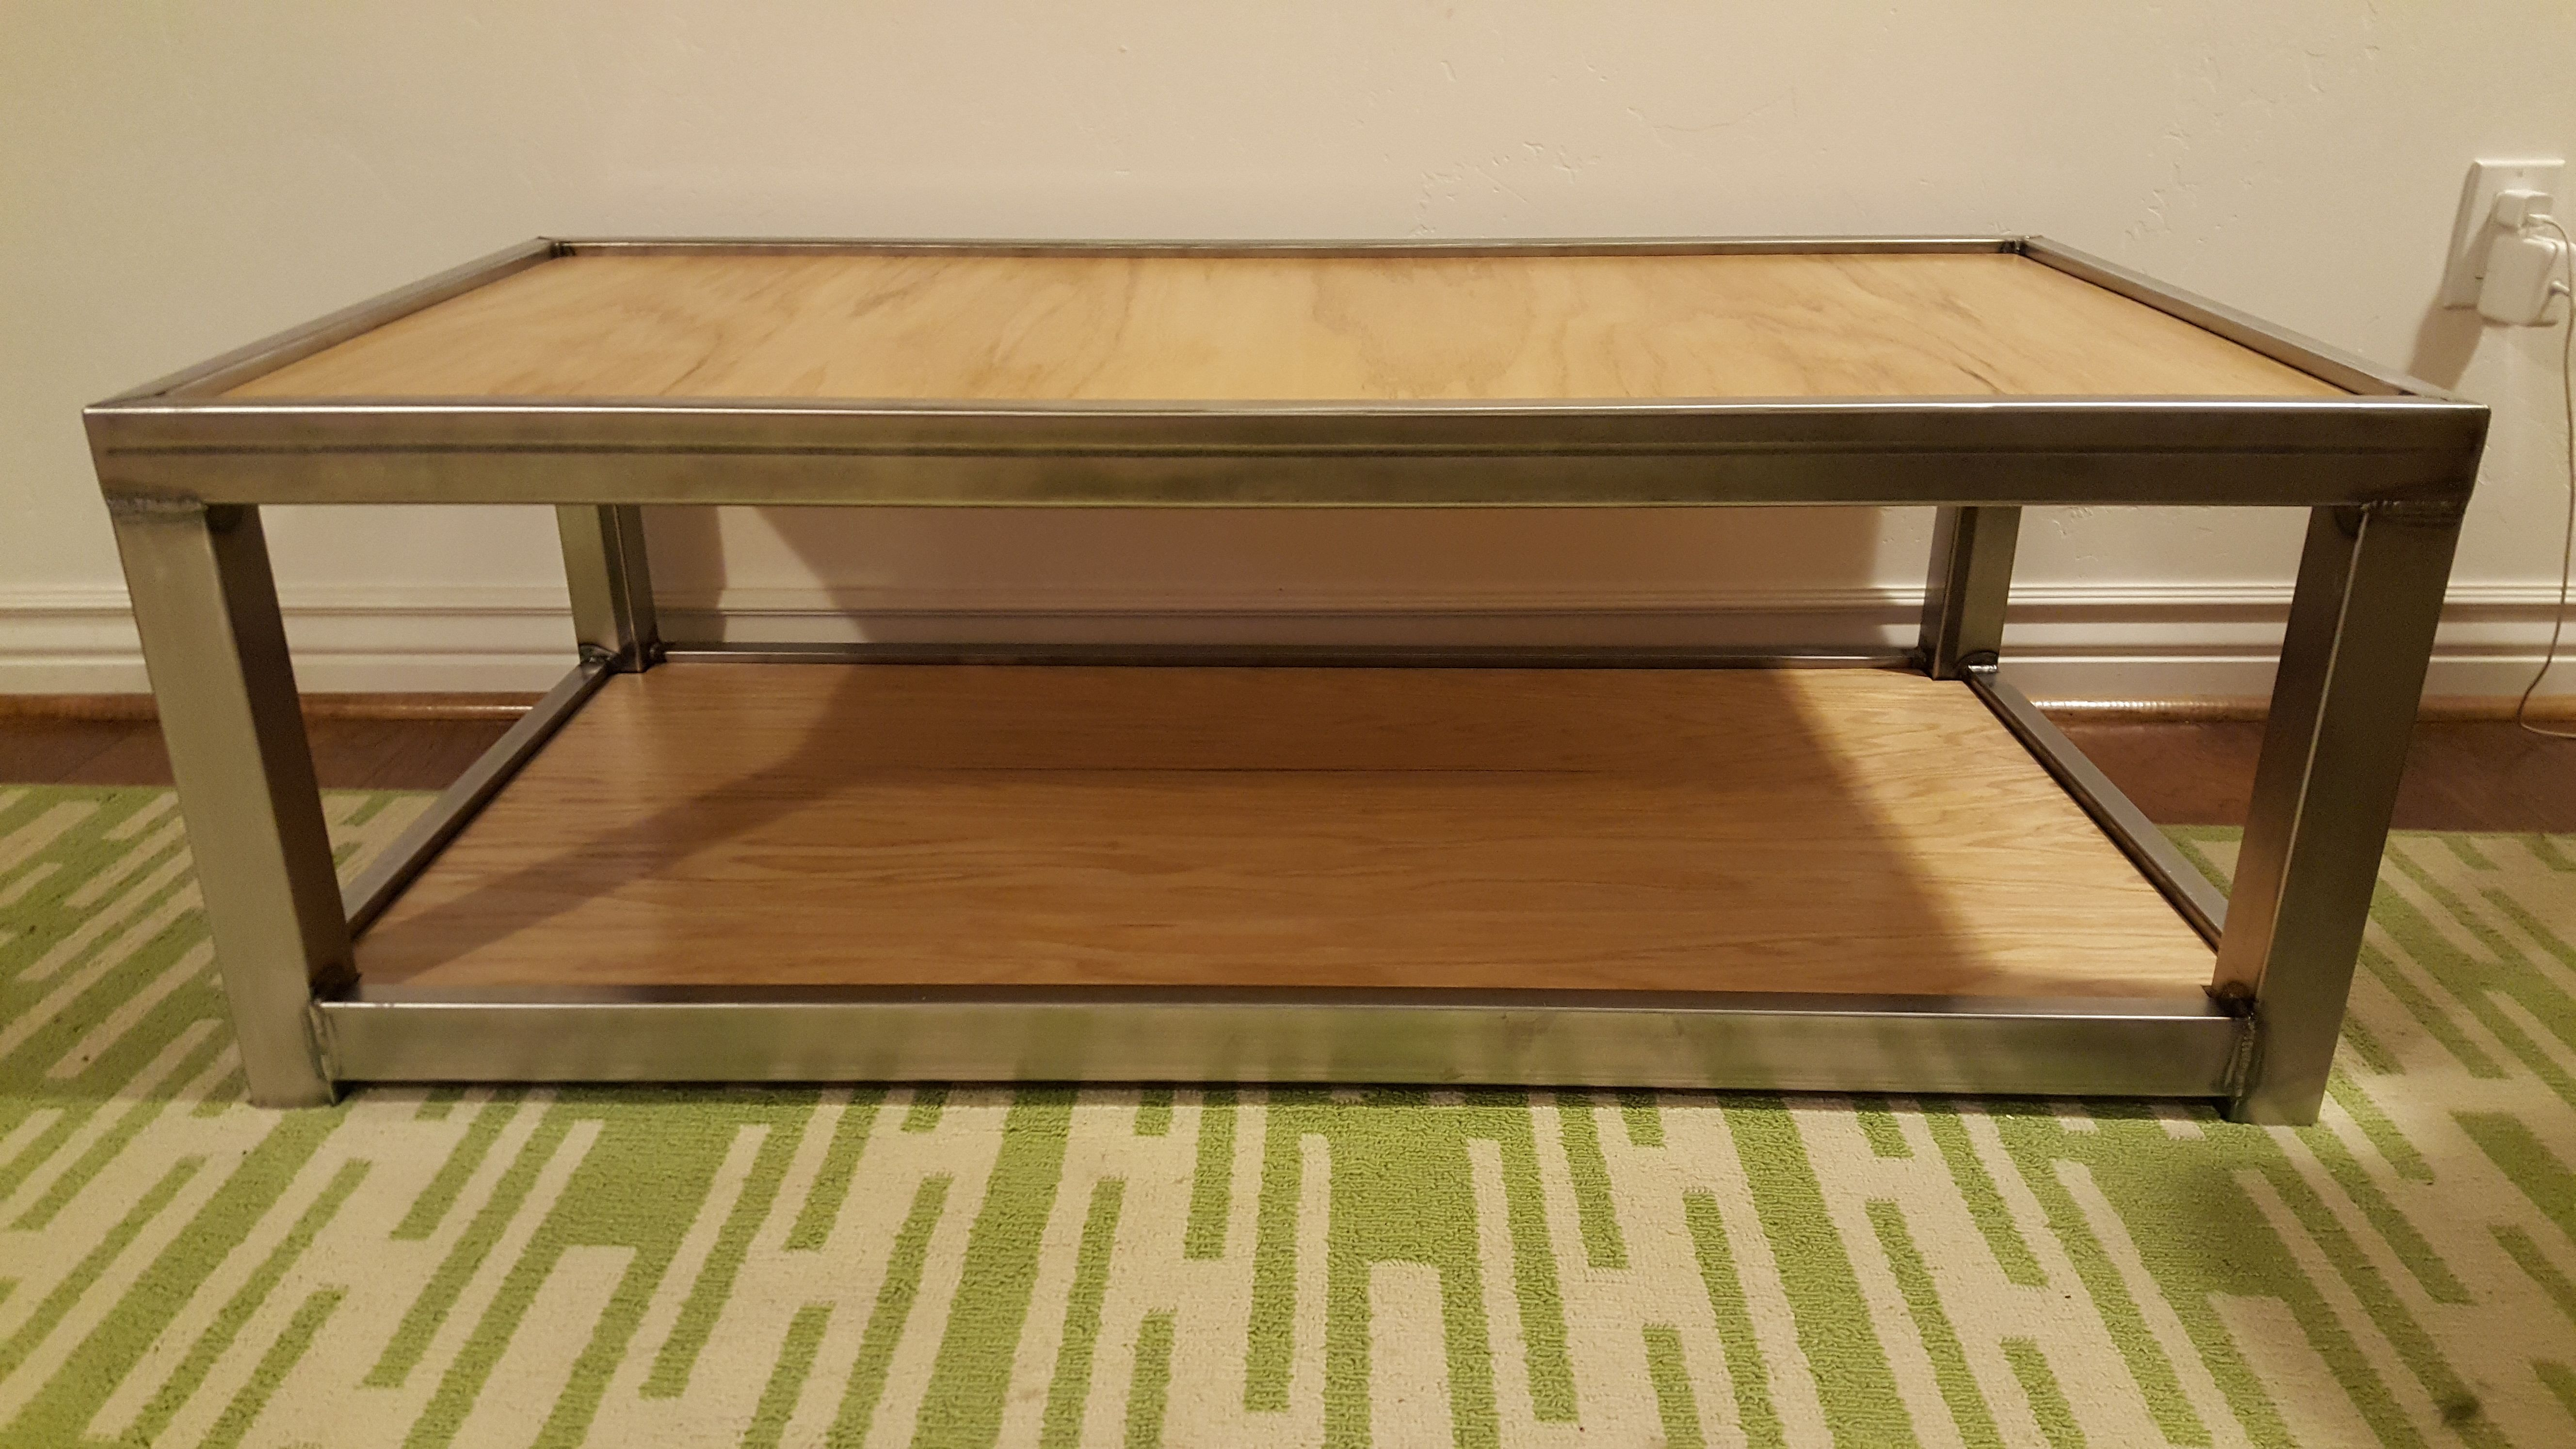 Buy A Hand Made Handmade Customizable Coffee Table Ottoman Bench Seat Made To Order From Choss